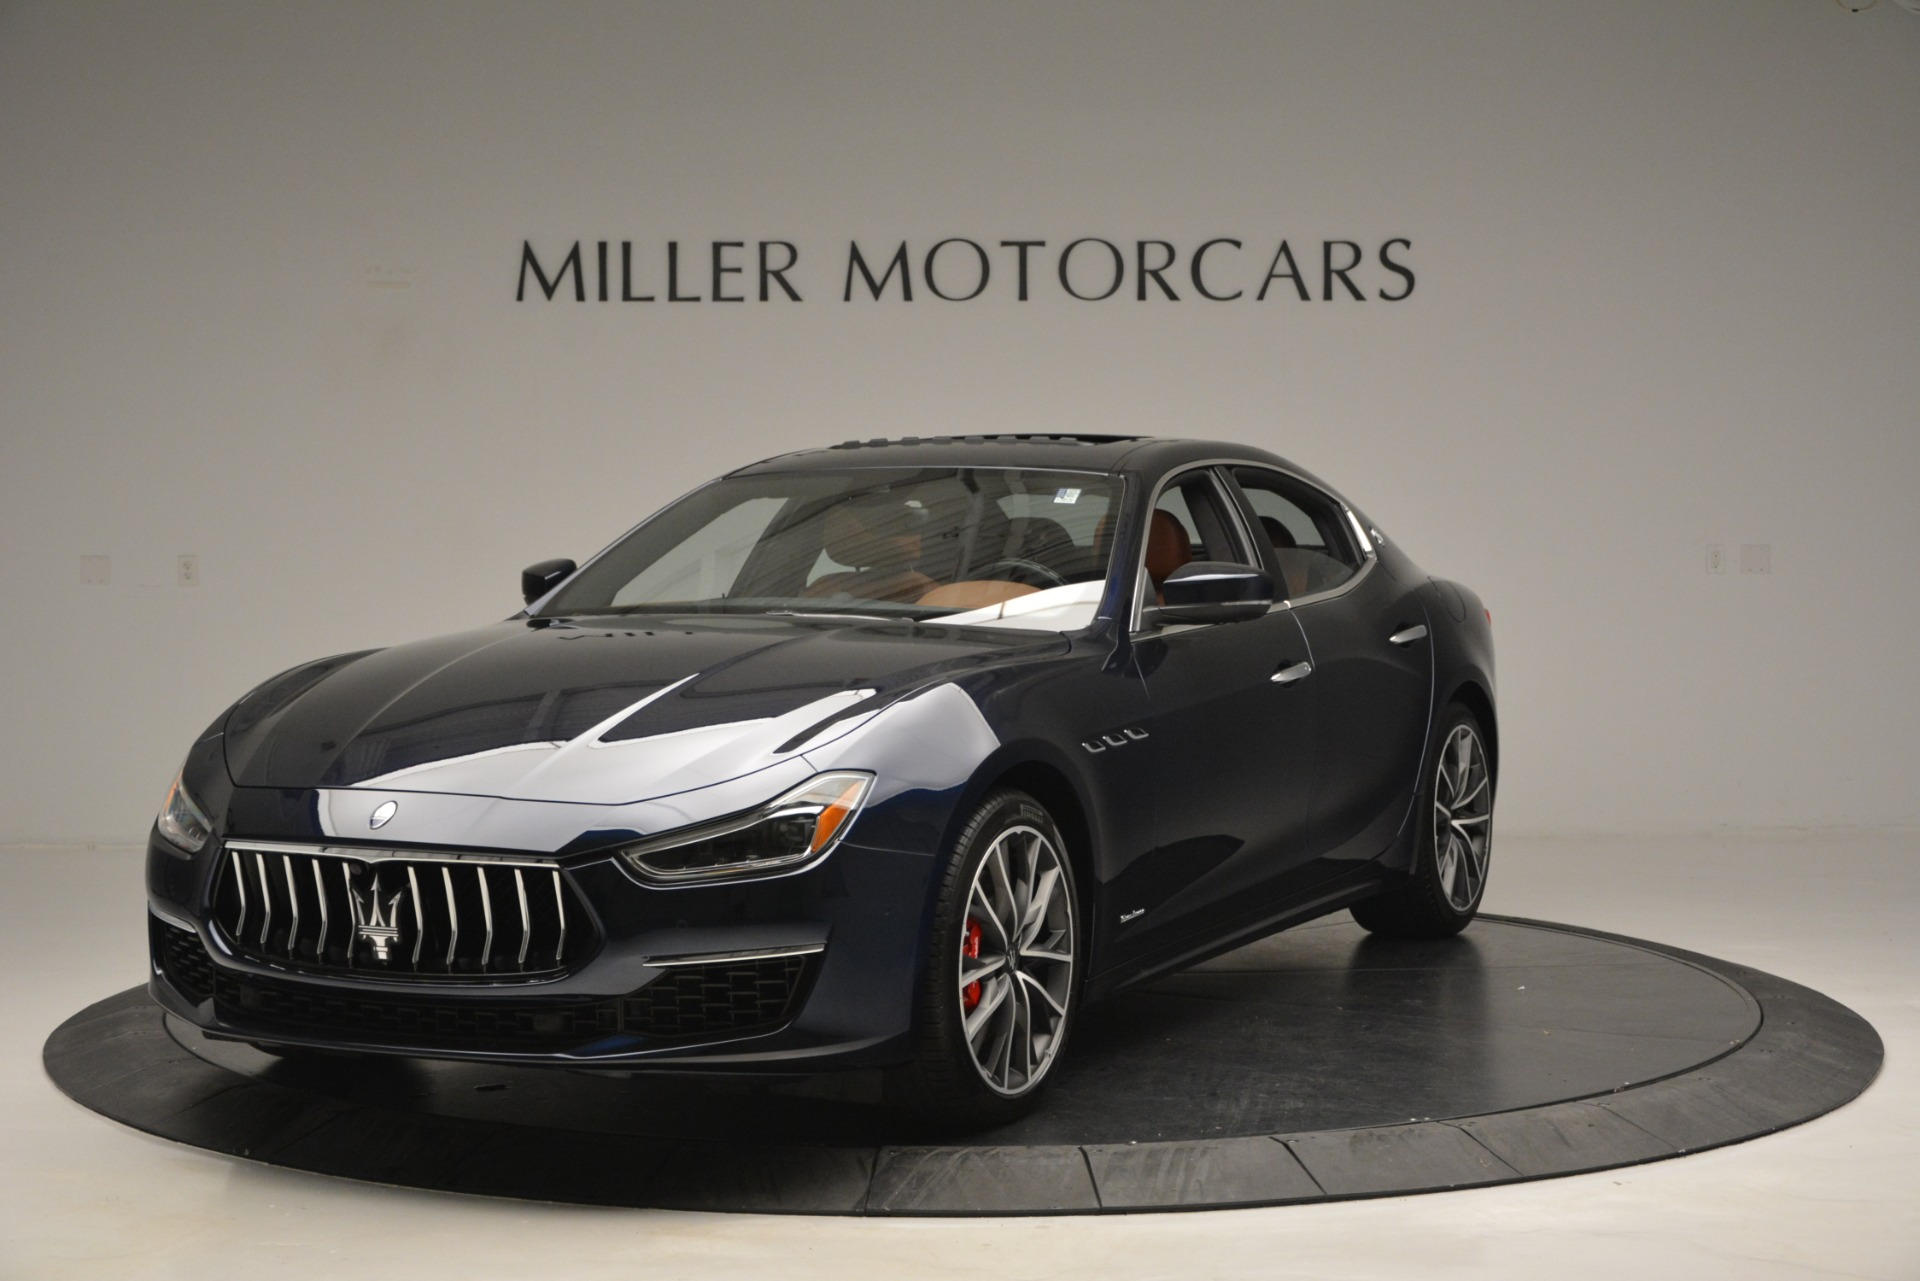 New 2019 Maserati Ghibli S Q4 GranLusso for sale Sold at Pagani of Greenwich in Greenwich CT 06830 1